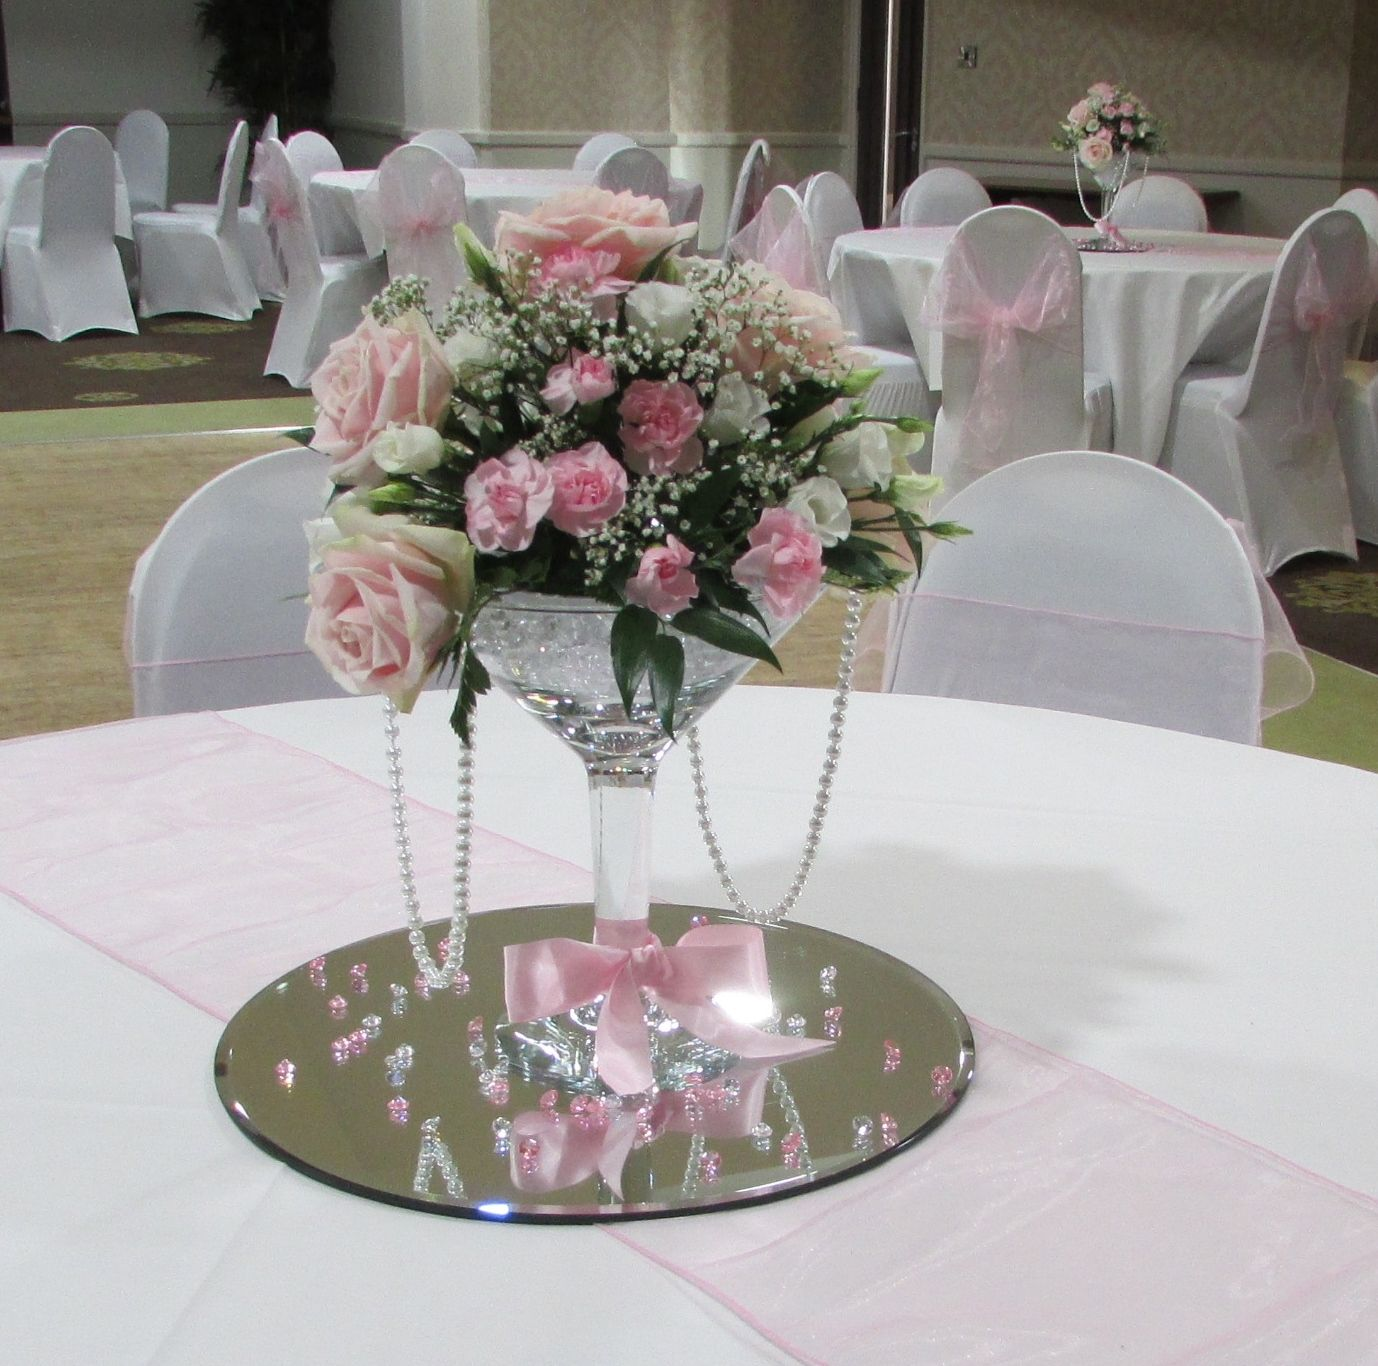 Elegant fresh wedding flowers centerpiece on luxury glass